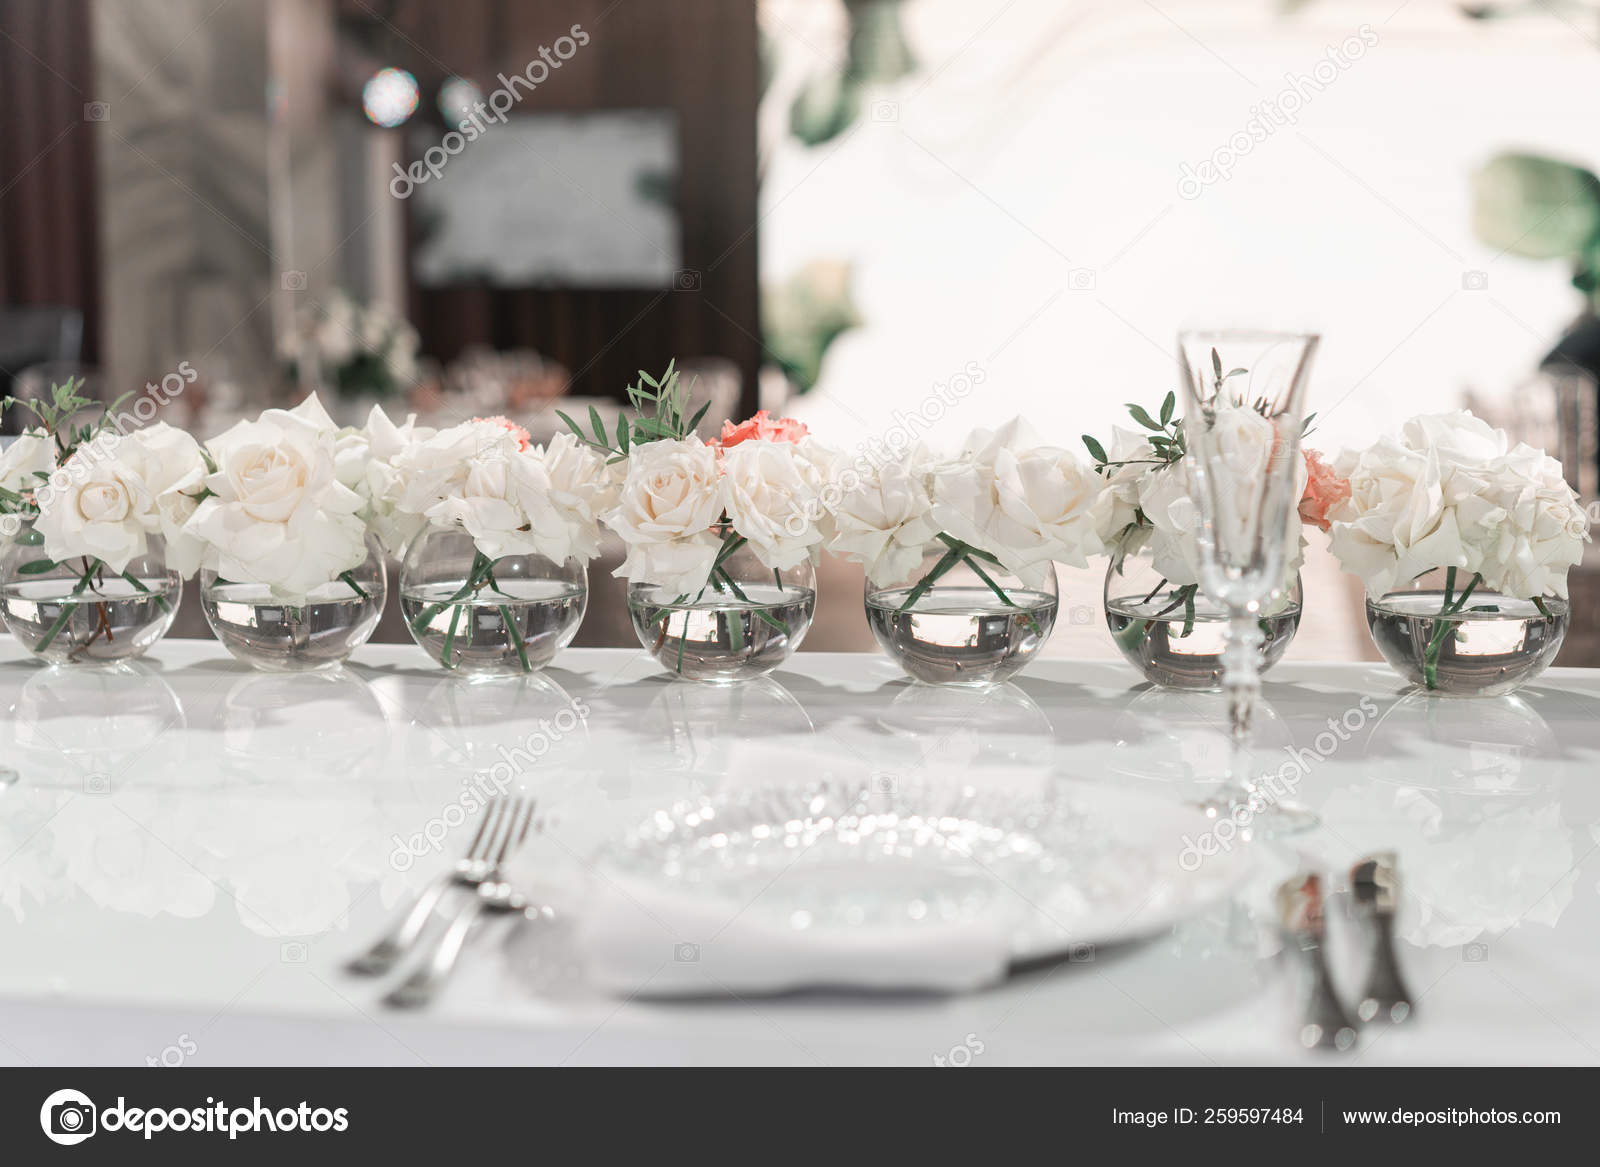 Small Flower Arrangements In Ball Glass Vases The Table Of The Newlyweds Interior Of Restaurant For Wedding Dinner Ready For Guests Catering Concept Stock Photo C Malkovkosta 259597484